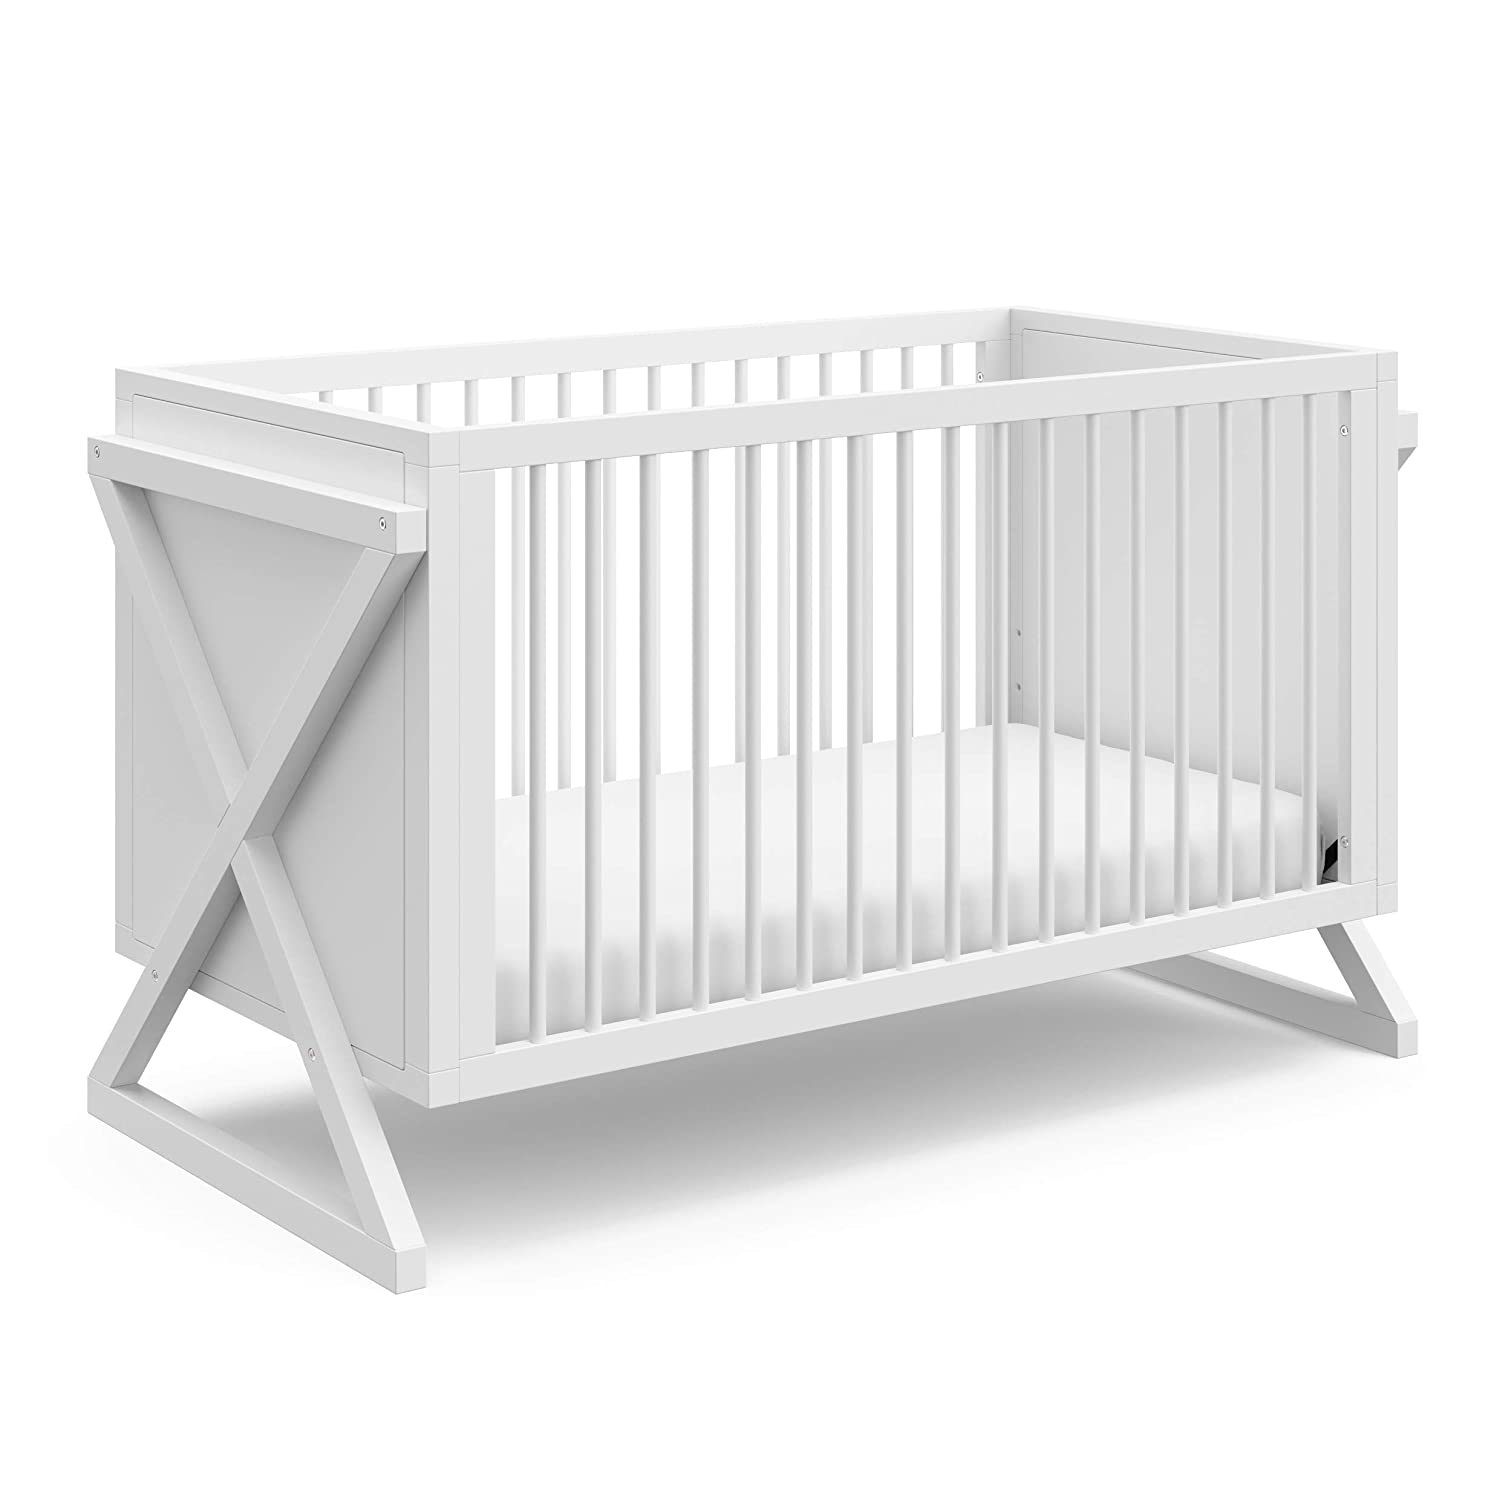 Stork Craft Equinox Jacksonville Manufacturer direct delivery Mall 3-in-1 Convertible Crib – Converts Easily to